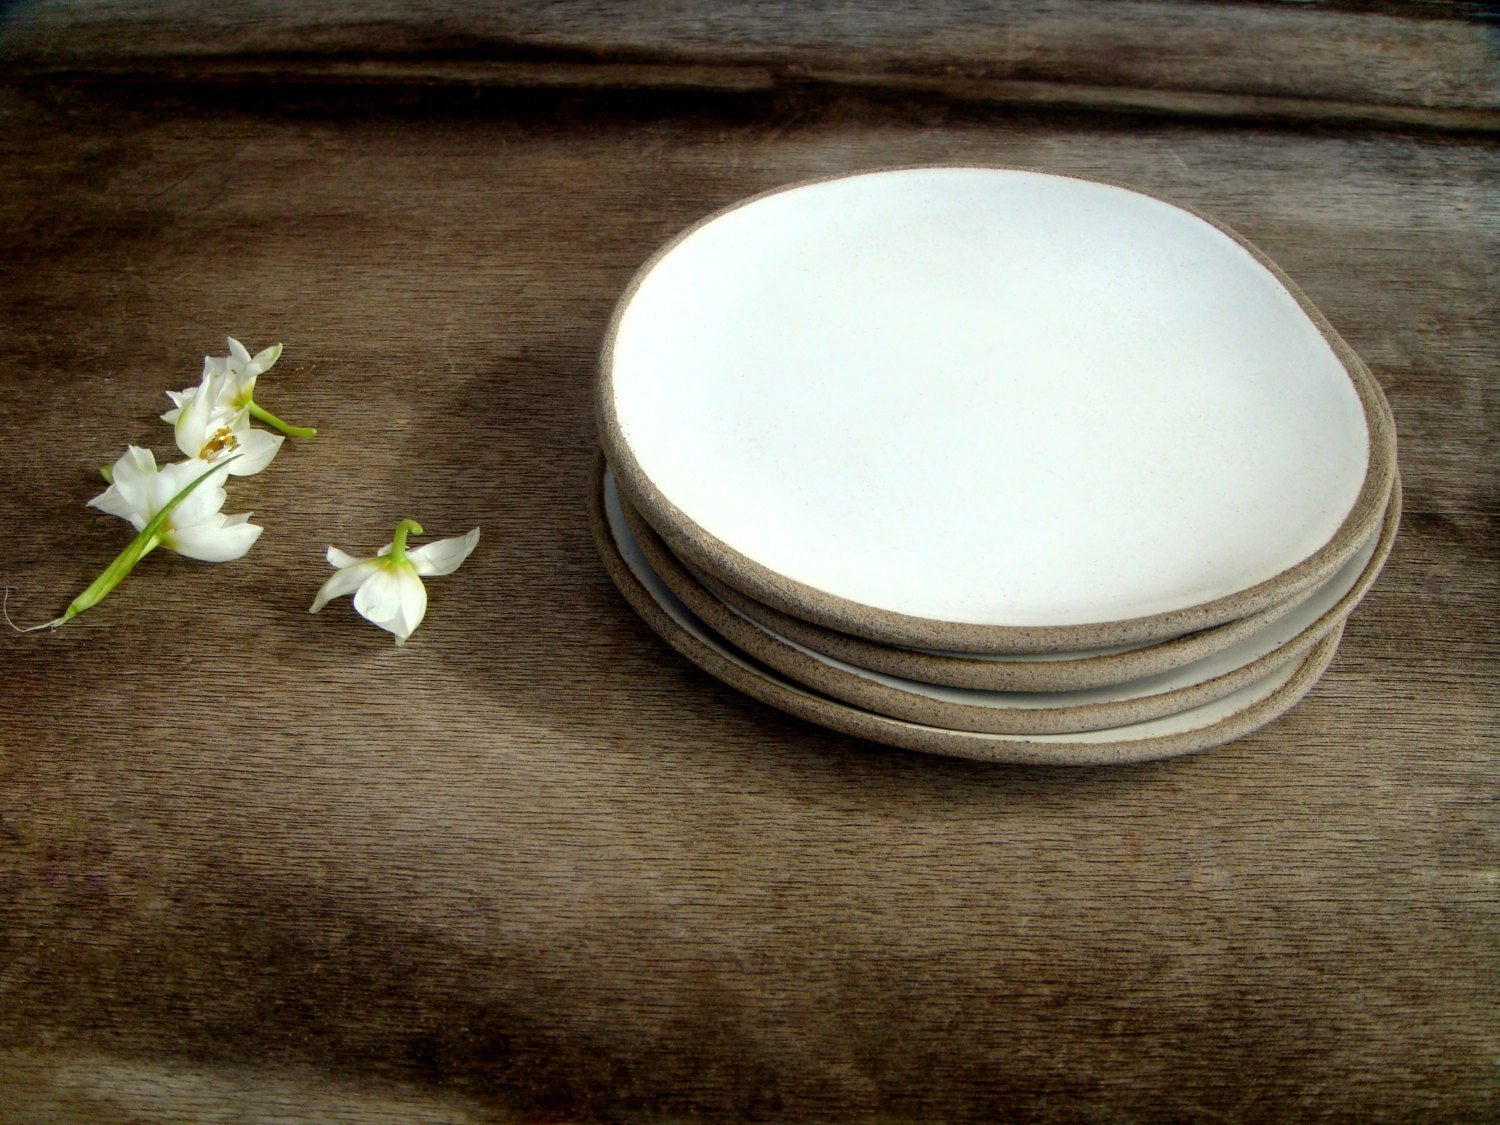 Gray Ceramic Plates Set Of 4 Handmade Stoneware Plates By